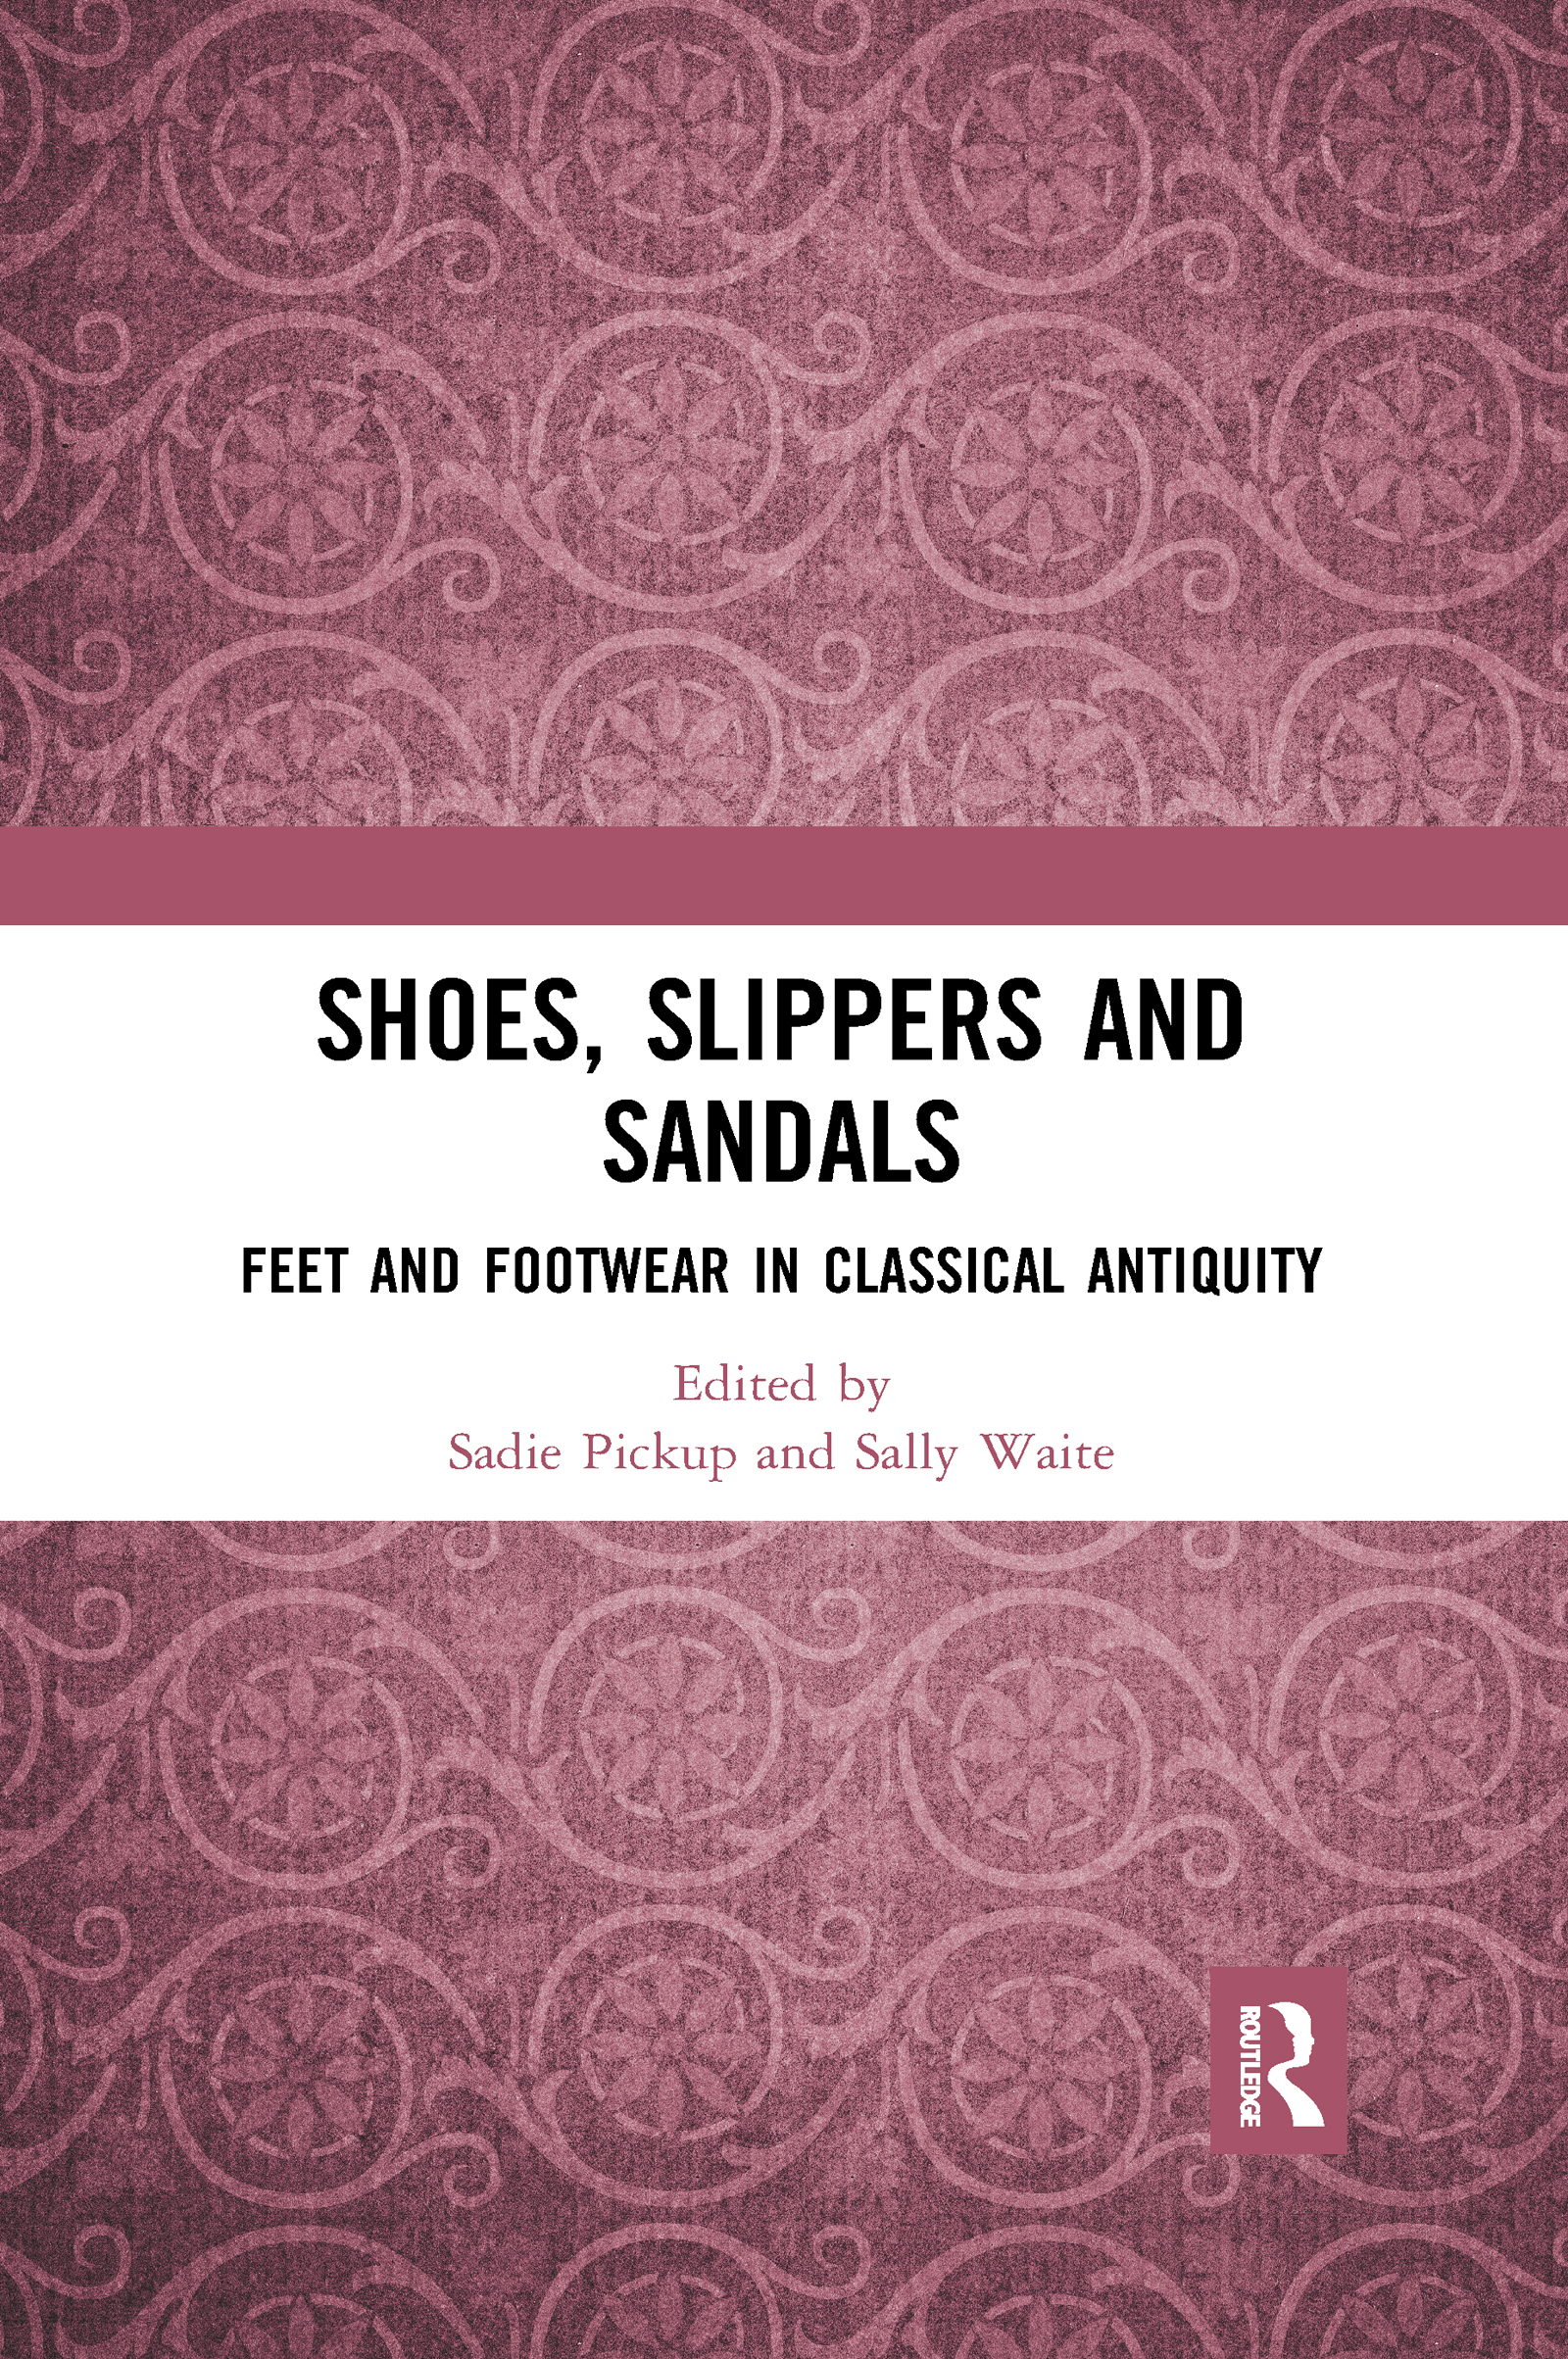 Shoes, Slippers, and Sandals